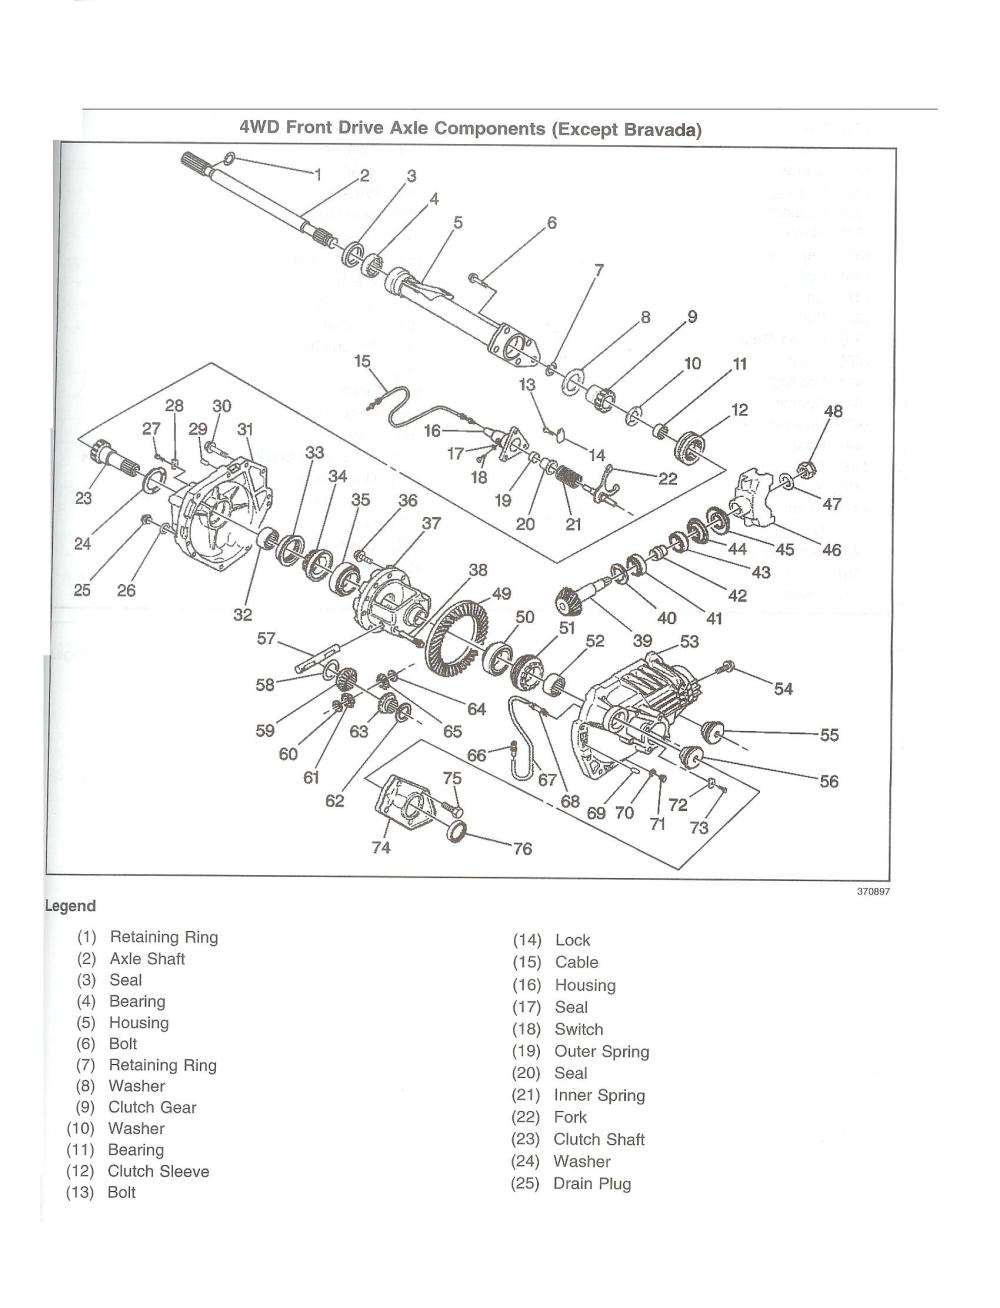 medium resolution of 2003 chevy blazer front axle diagram page 8 wiring diagram for you 2004 chevy s10 axle diagram